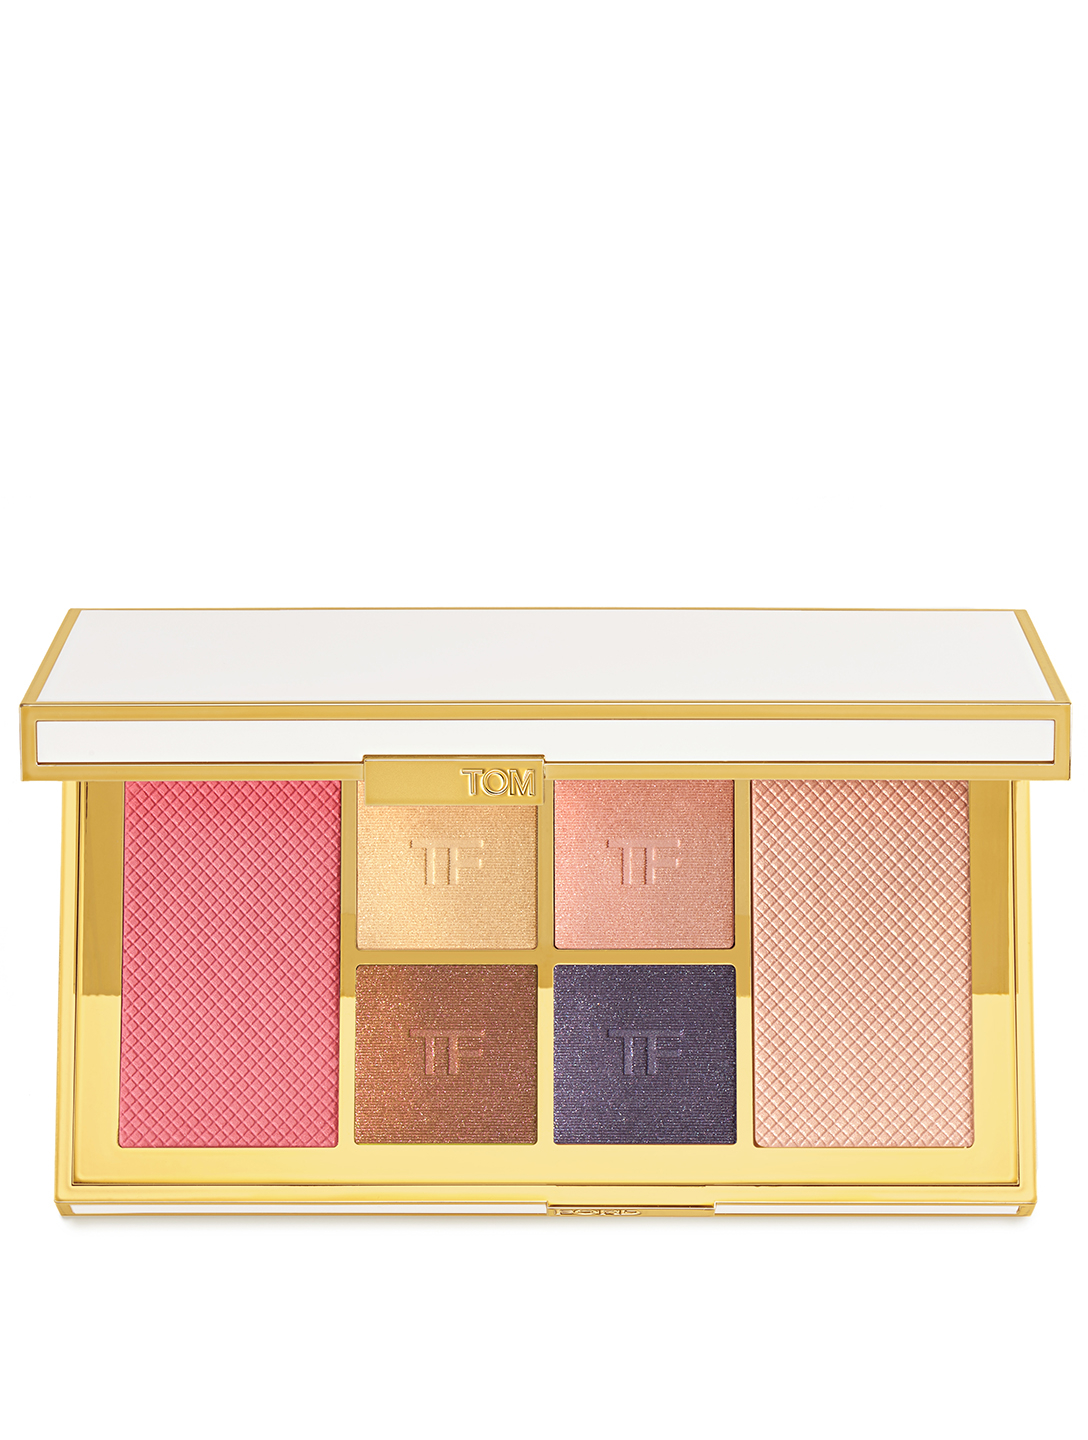 TOM FORD Soleil Eye And Cheek Palette Beauty Multi